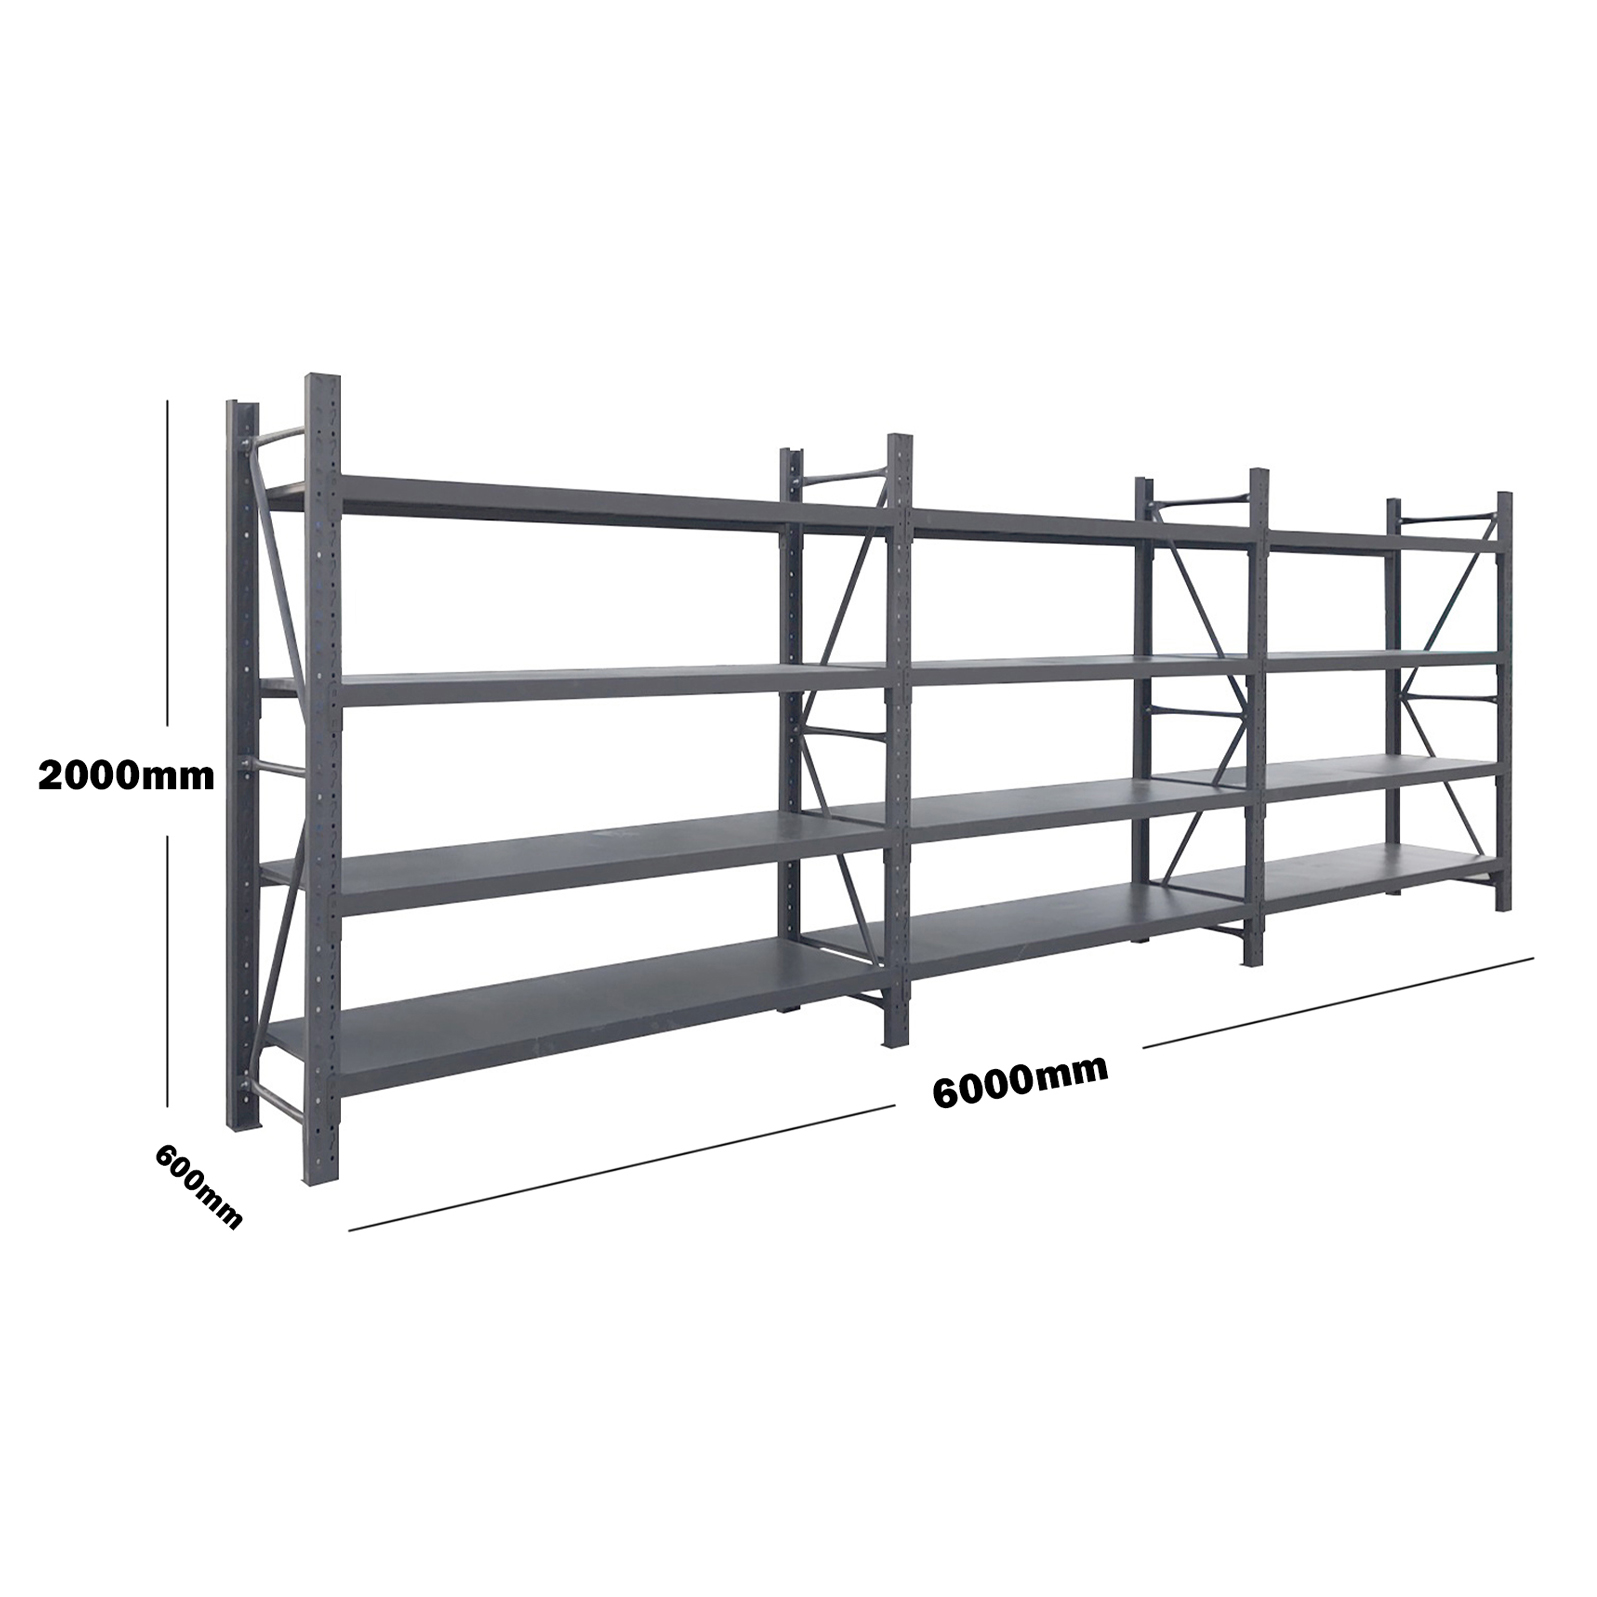 6M(L) x 2M(H) x 0.6M(D) Shelves Racking Metal Steel Charcoal 6020C